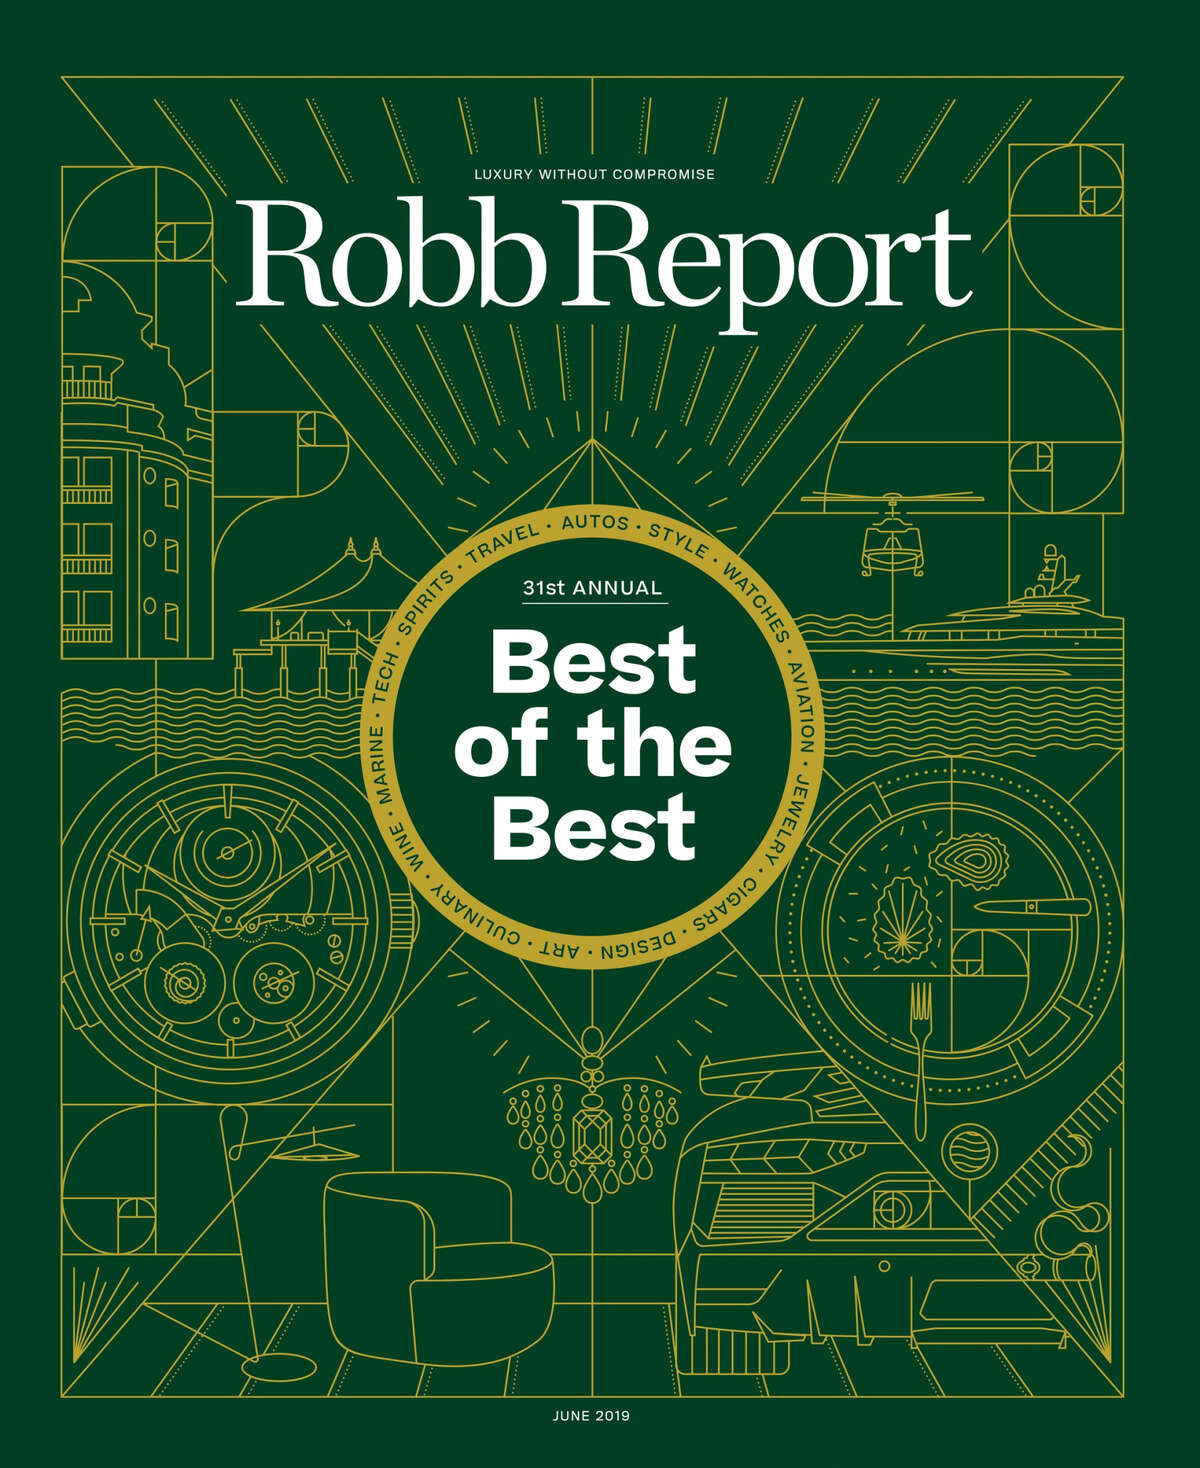 """The Robb Report named Chris Shepherd world's best chef in its annual """"Best of the Best"""" list of the best dining experiences on earth. >>>See some of his signature dishes ..."""